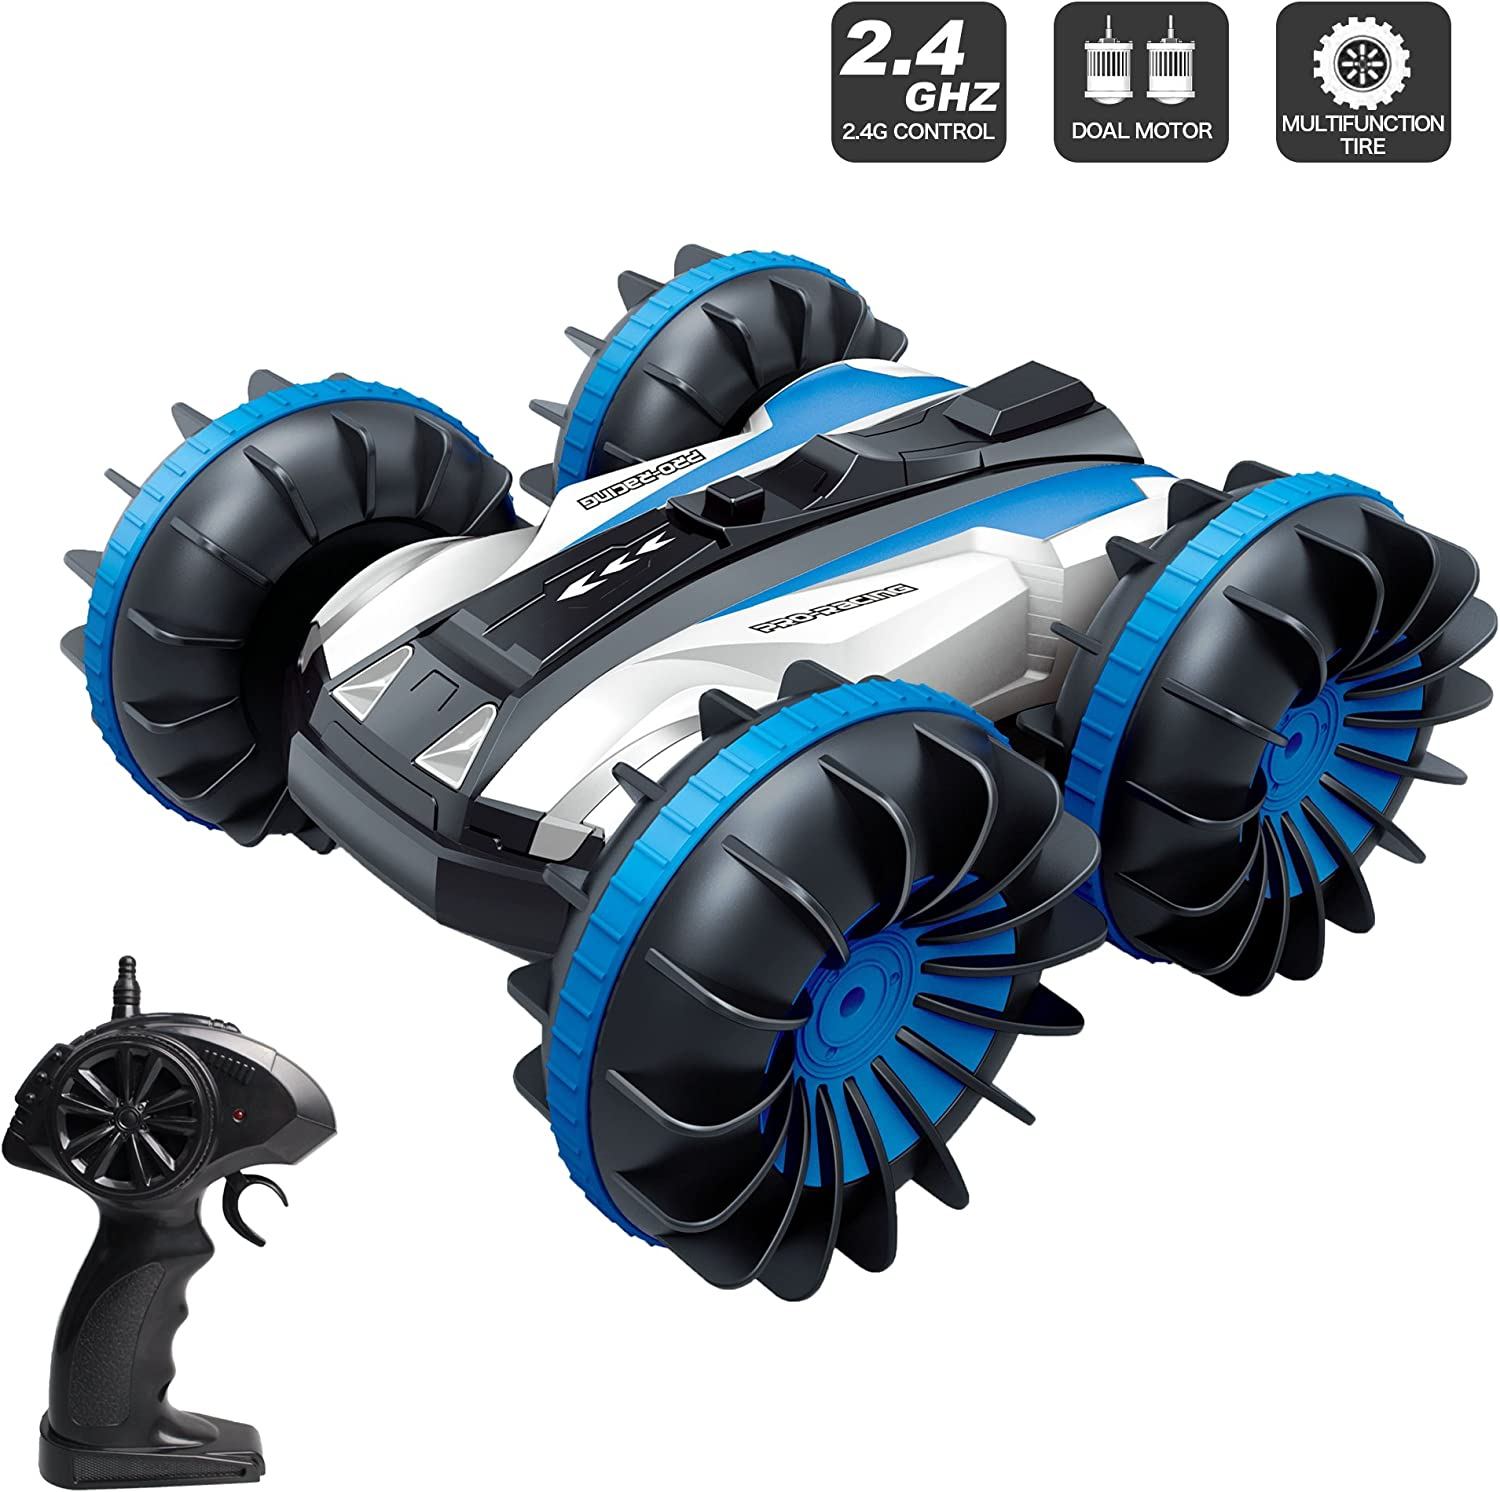 Amphibious RC Stunt Car Over item handling 2.4Ghz - Contr Water Land Max 40% OFF and Remote 4WD